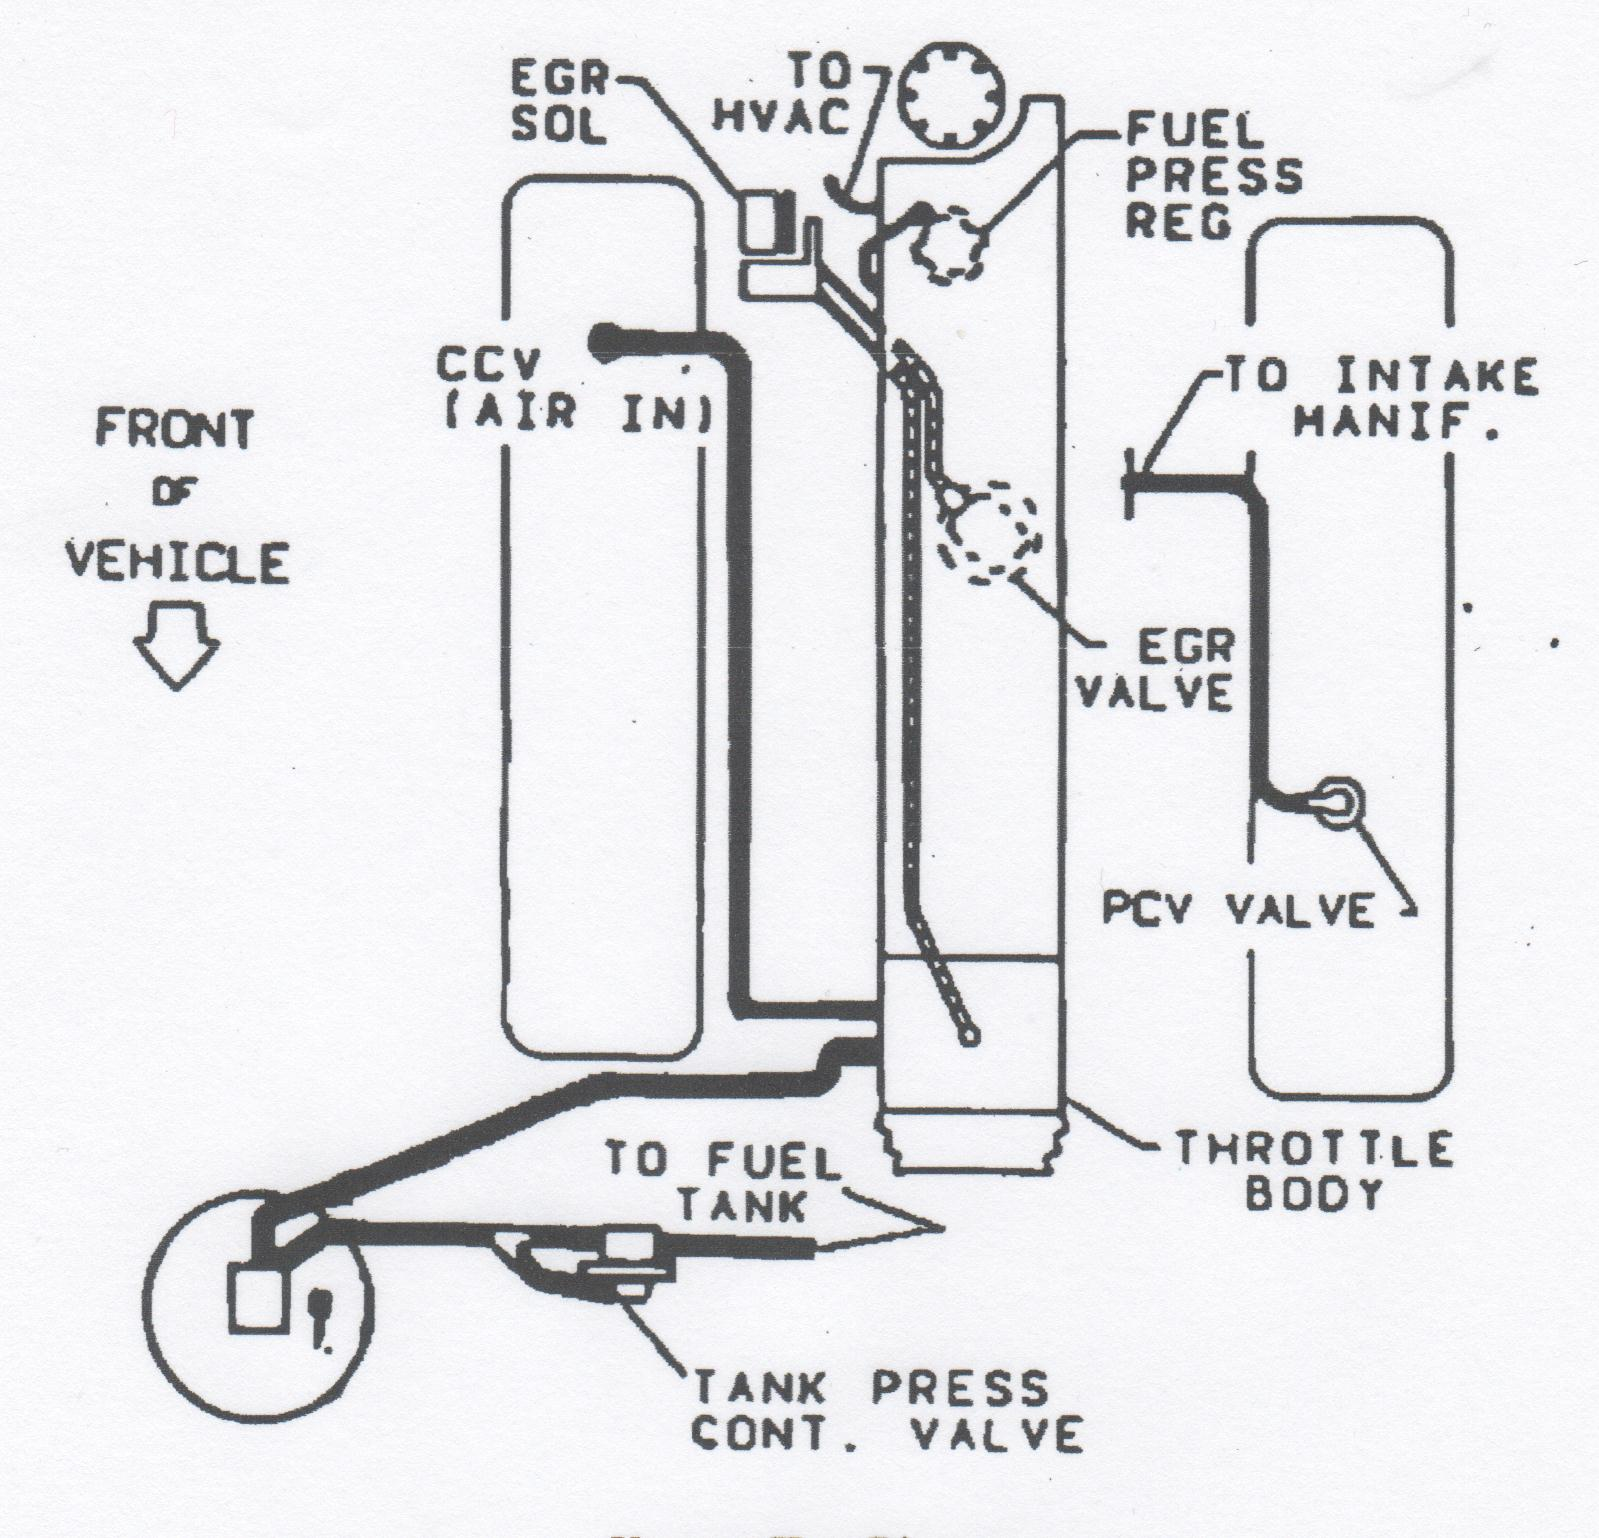 wiring diagram for mallard motorhome wiring image 1985 fleetwood rv floor plans trends home design images on wiring diagram for mallard motorhome